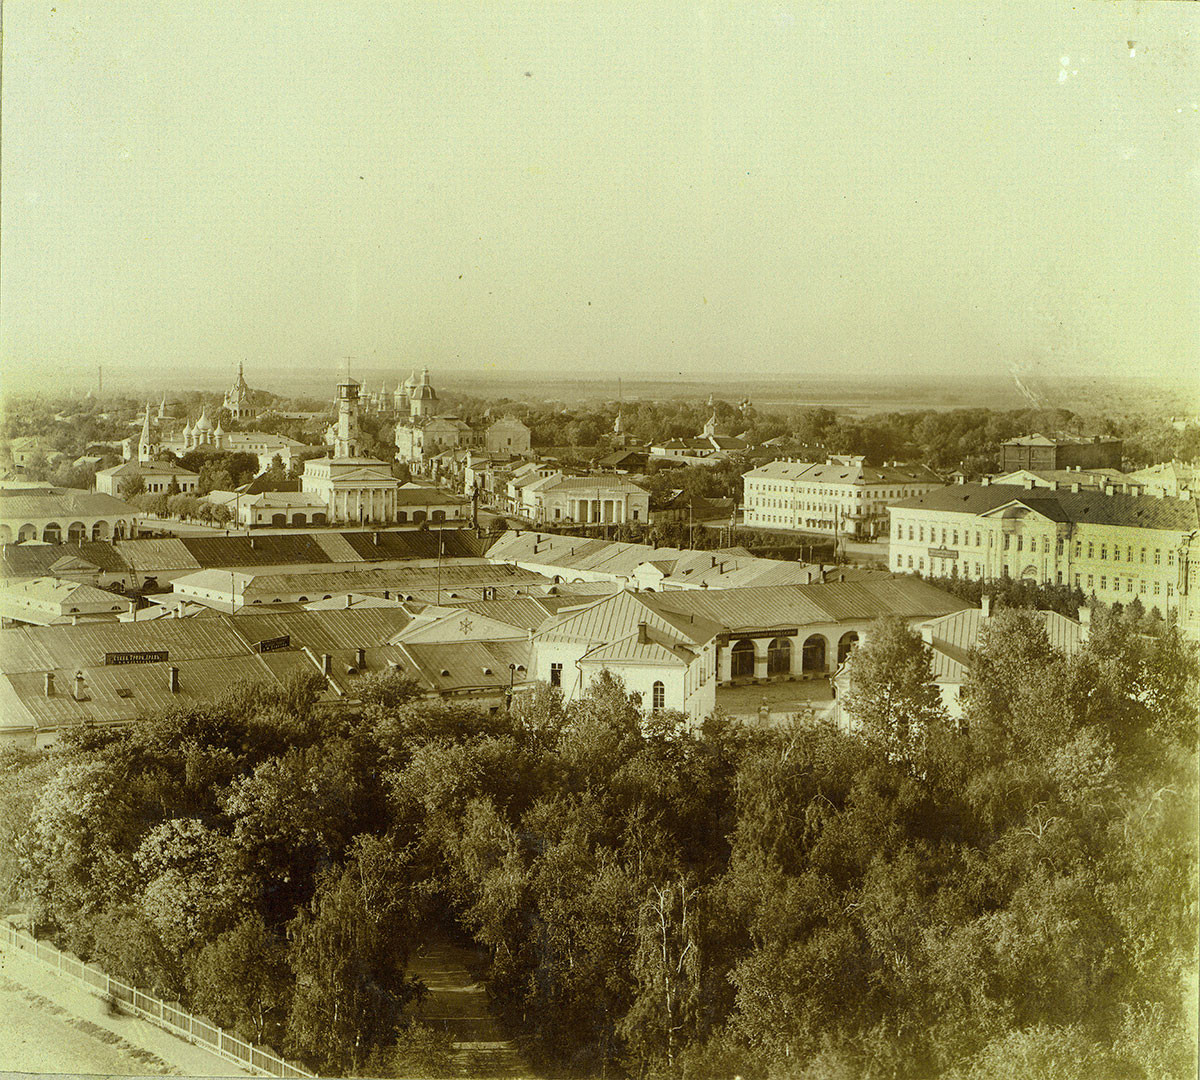 Kostroma. View of Susanin Square from bell tower of Epiphany Cathedral (demolished in 1934). Upper right: Epiphany Street leading to Epiphany Convent. Center: Fire tower on Susanin Square. Foreground. Large Flour Trading Rows. Summer 1910